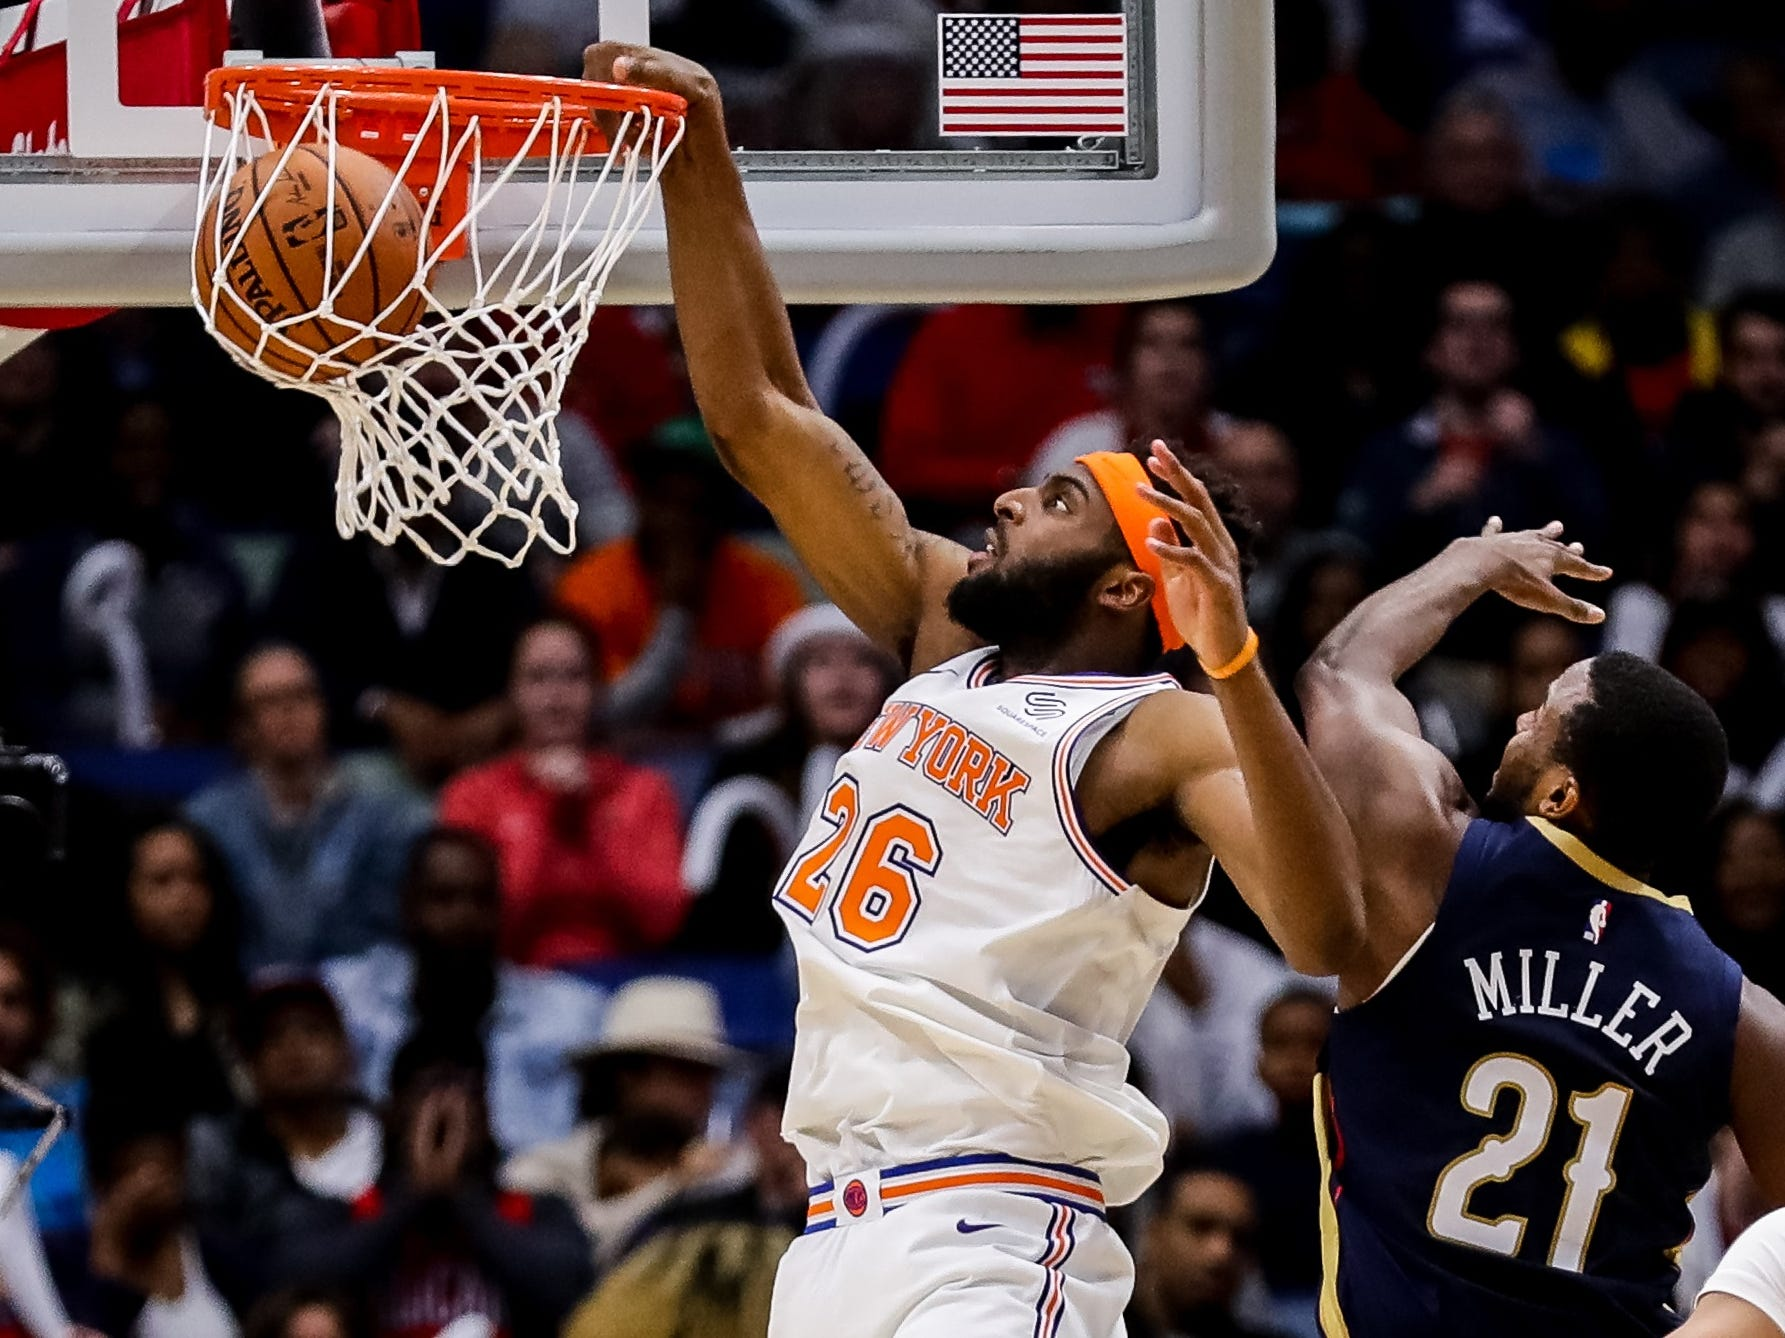 Nov. 16: Knicks center Mitchell Robinson (26) finishes a one-handed flsuh against Pelicans defender Darius Miller (21) during the second half in New Orleans.